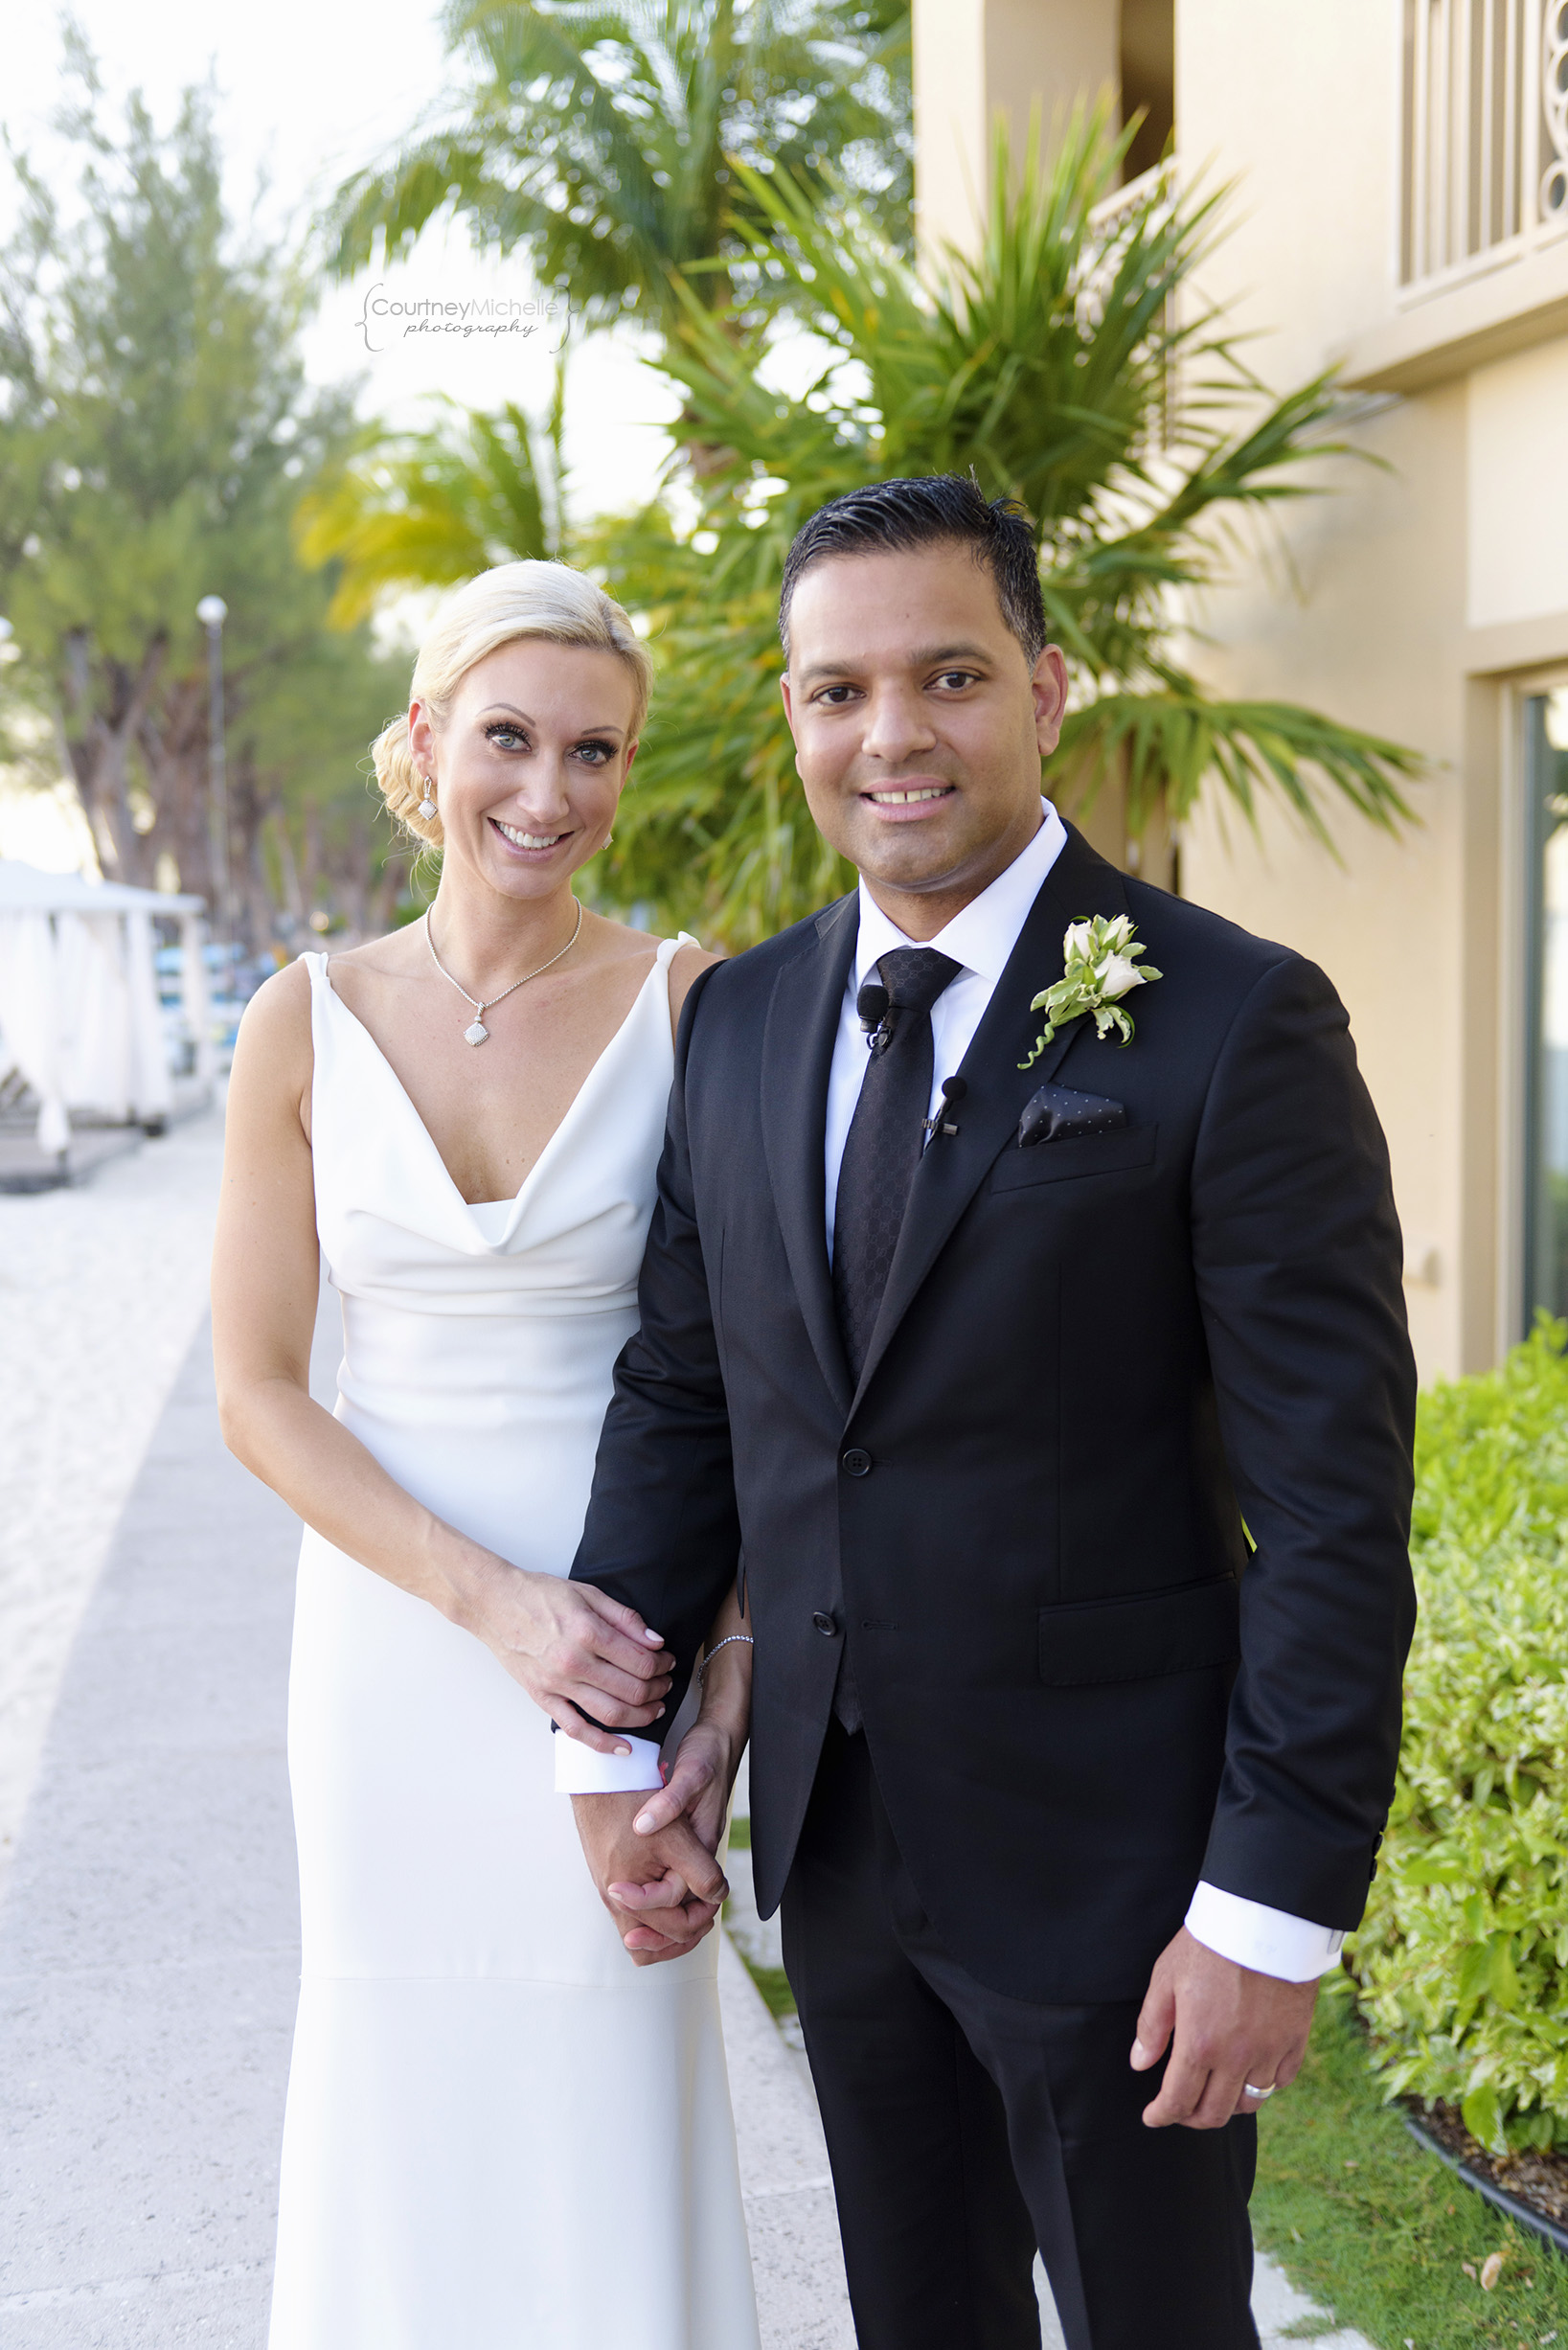 bride-and-groom-portrait-grand-cayman-beach-wedding-photography-by-courtney-laper©CopyrightCMP-LeaAnneRaj-7836.jpg